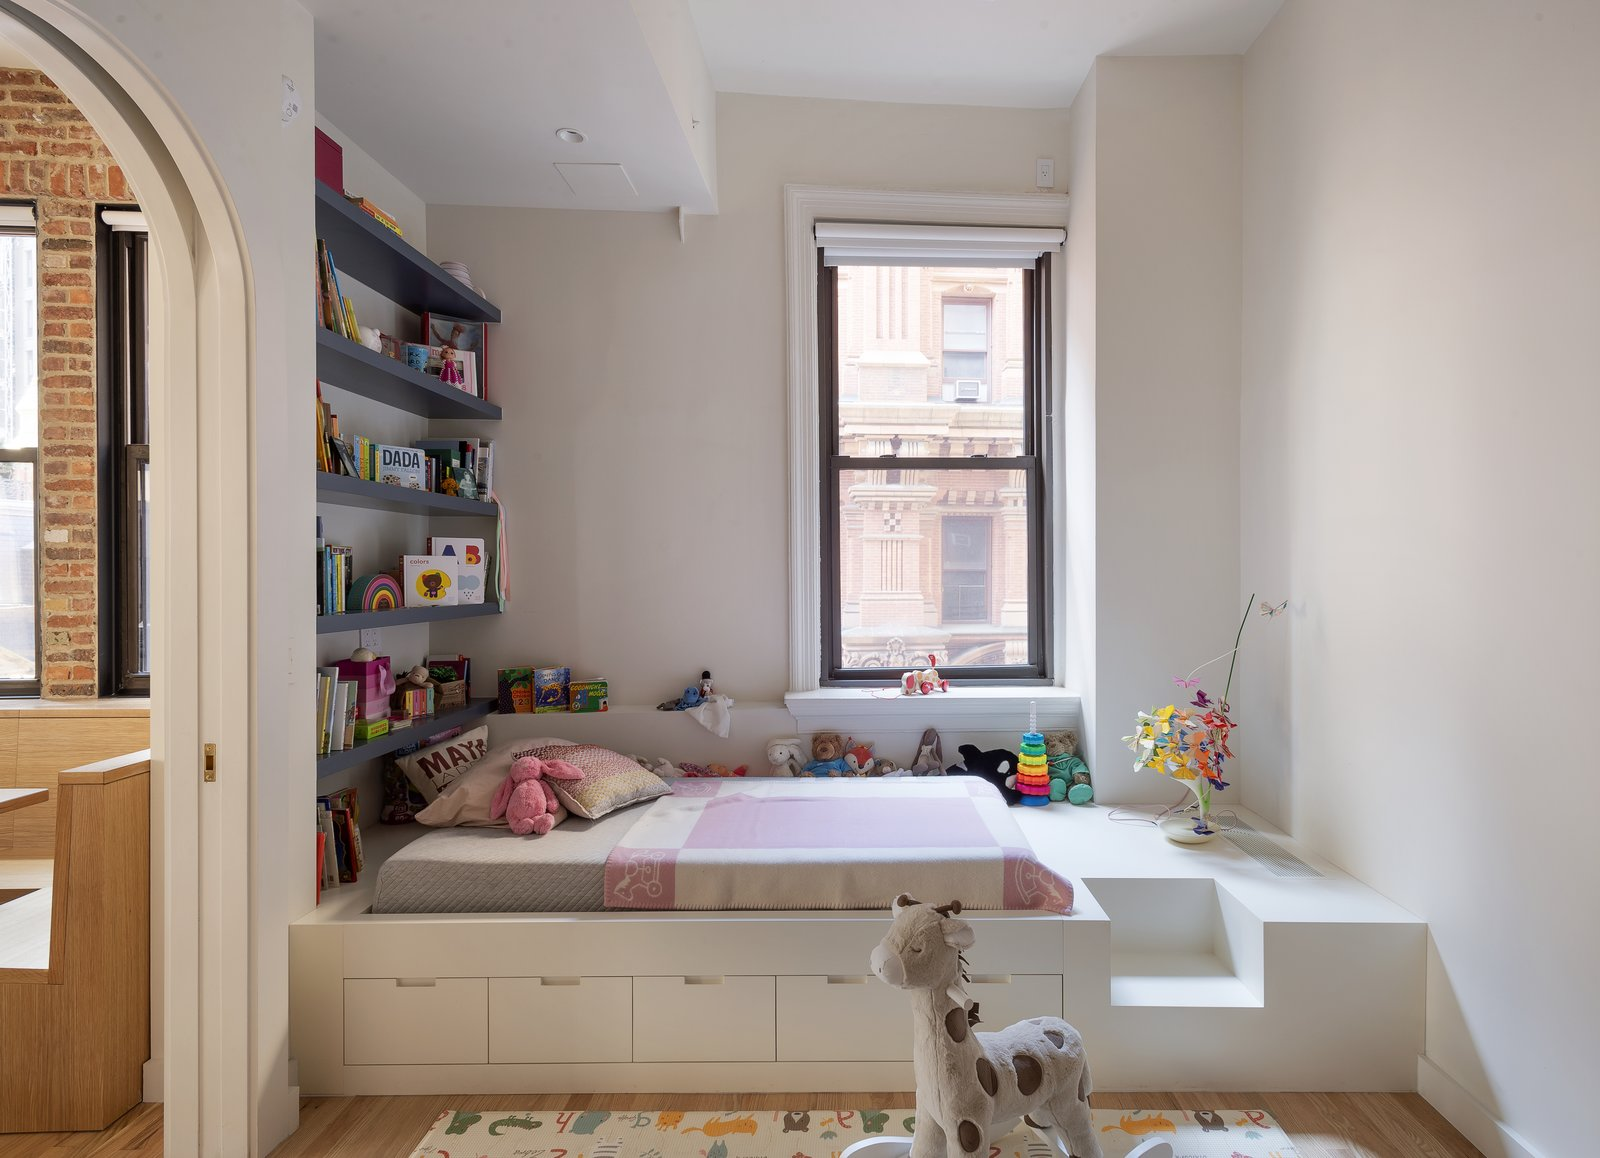 The Bare Essentials by StudioKCA Kid's Room